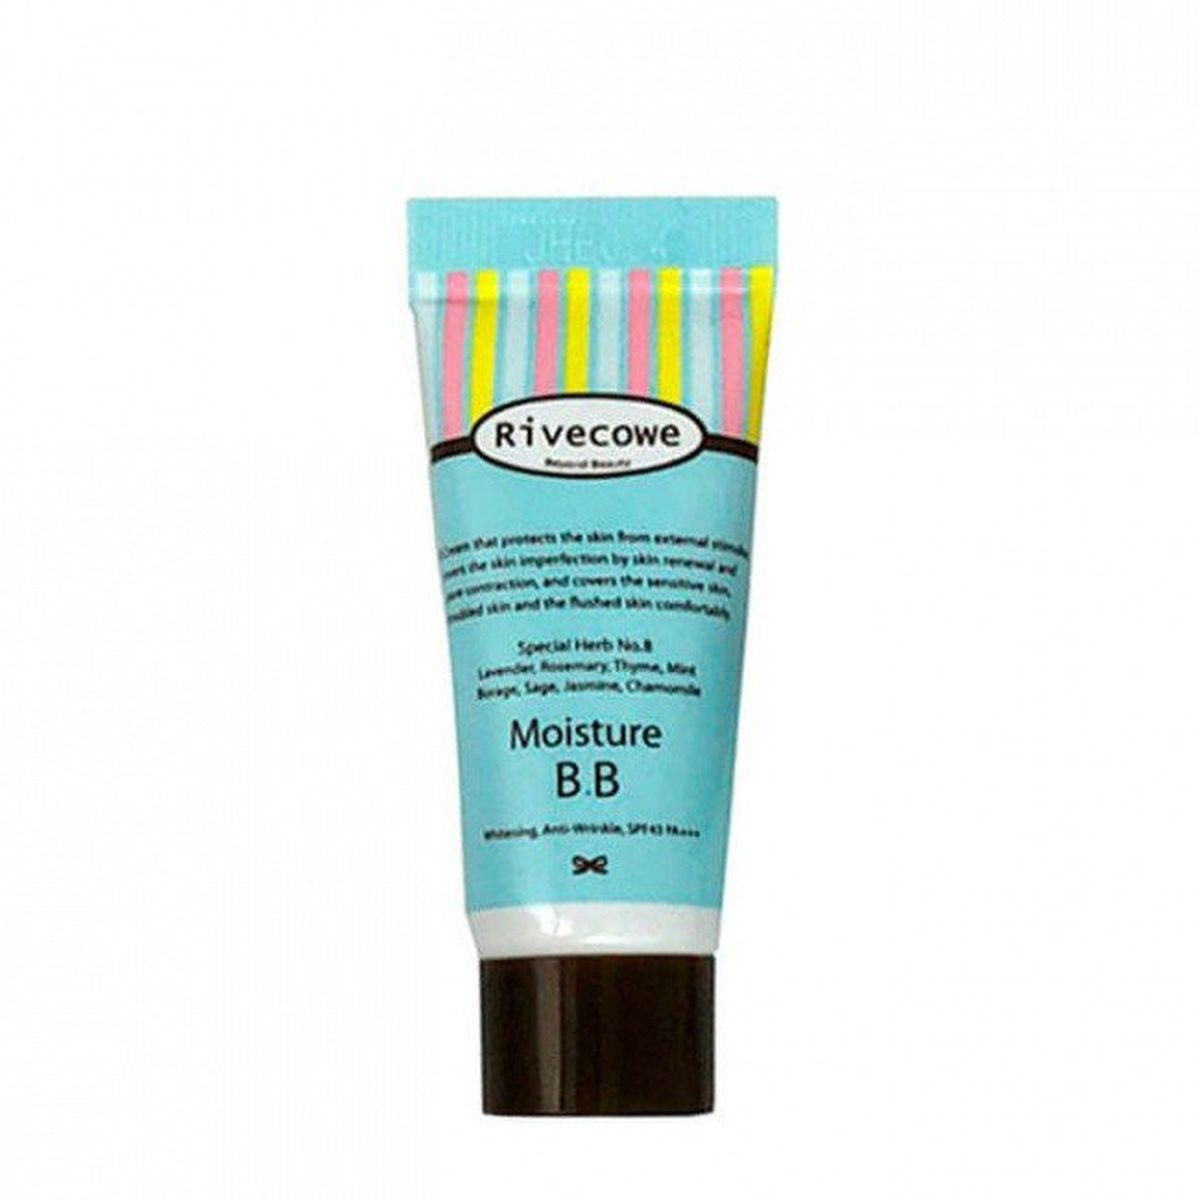 Миниатюра ББ-крема RIVECOWE Beyond Beauty Moisture BB SPF30 РА+++ - 5 мл